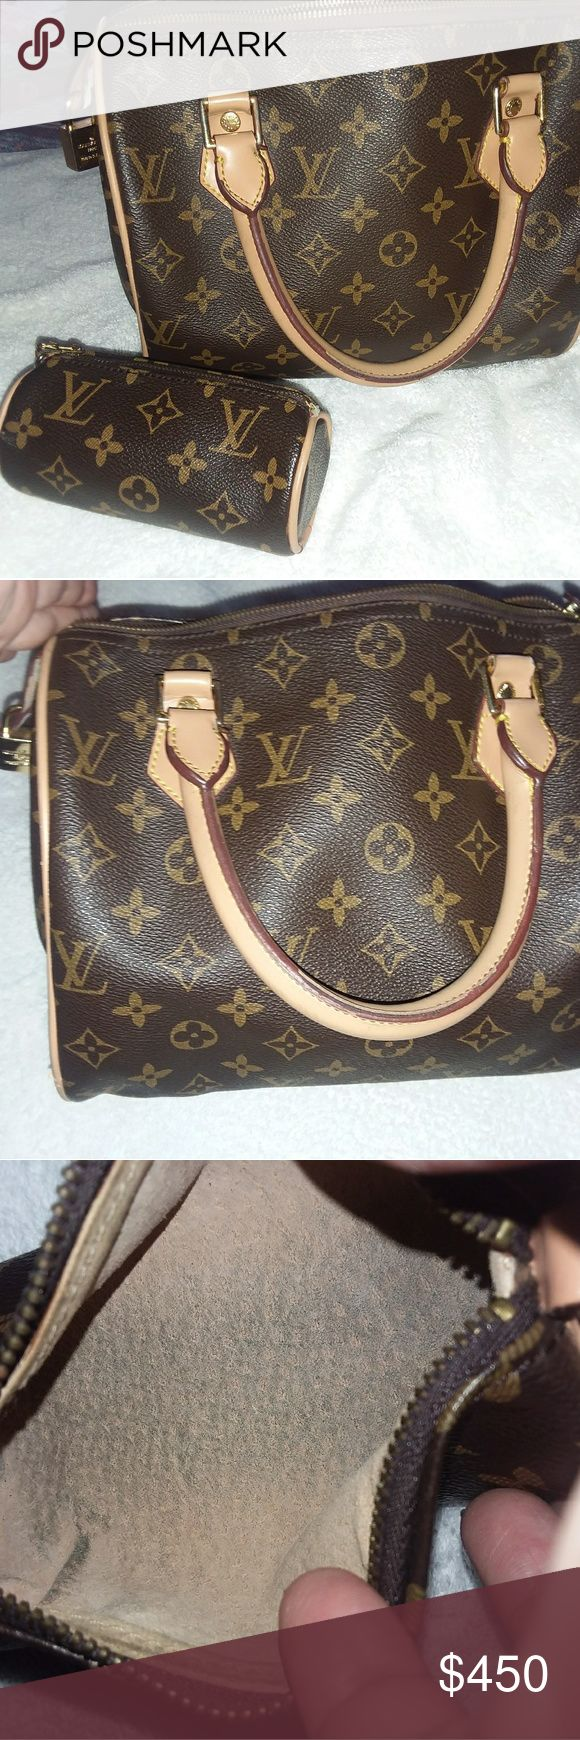 Louis vuitton purse and make up bag Used some wear see pics inside bag has make up spot price reflects. Louis Vuitton Bags Satchels